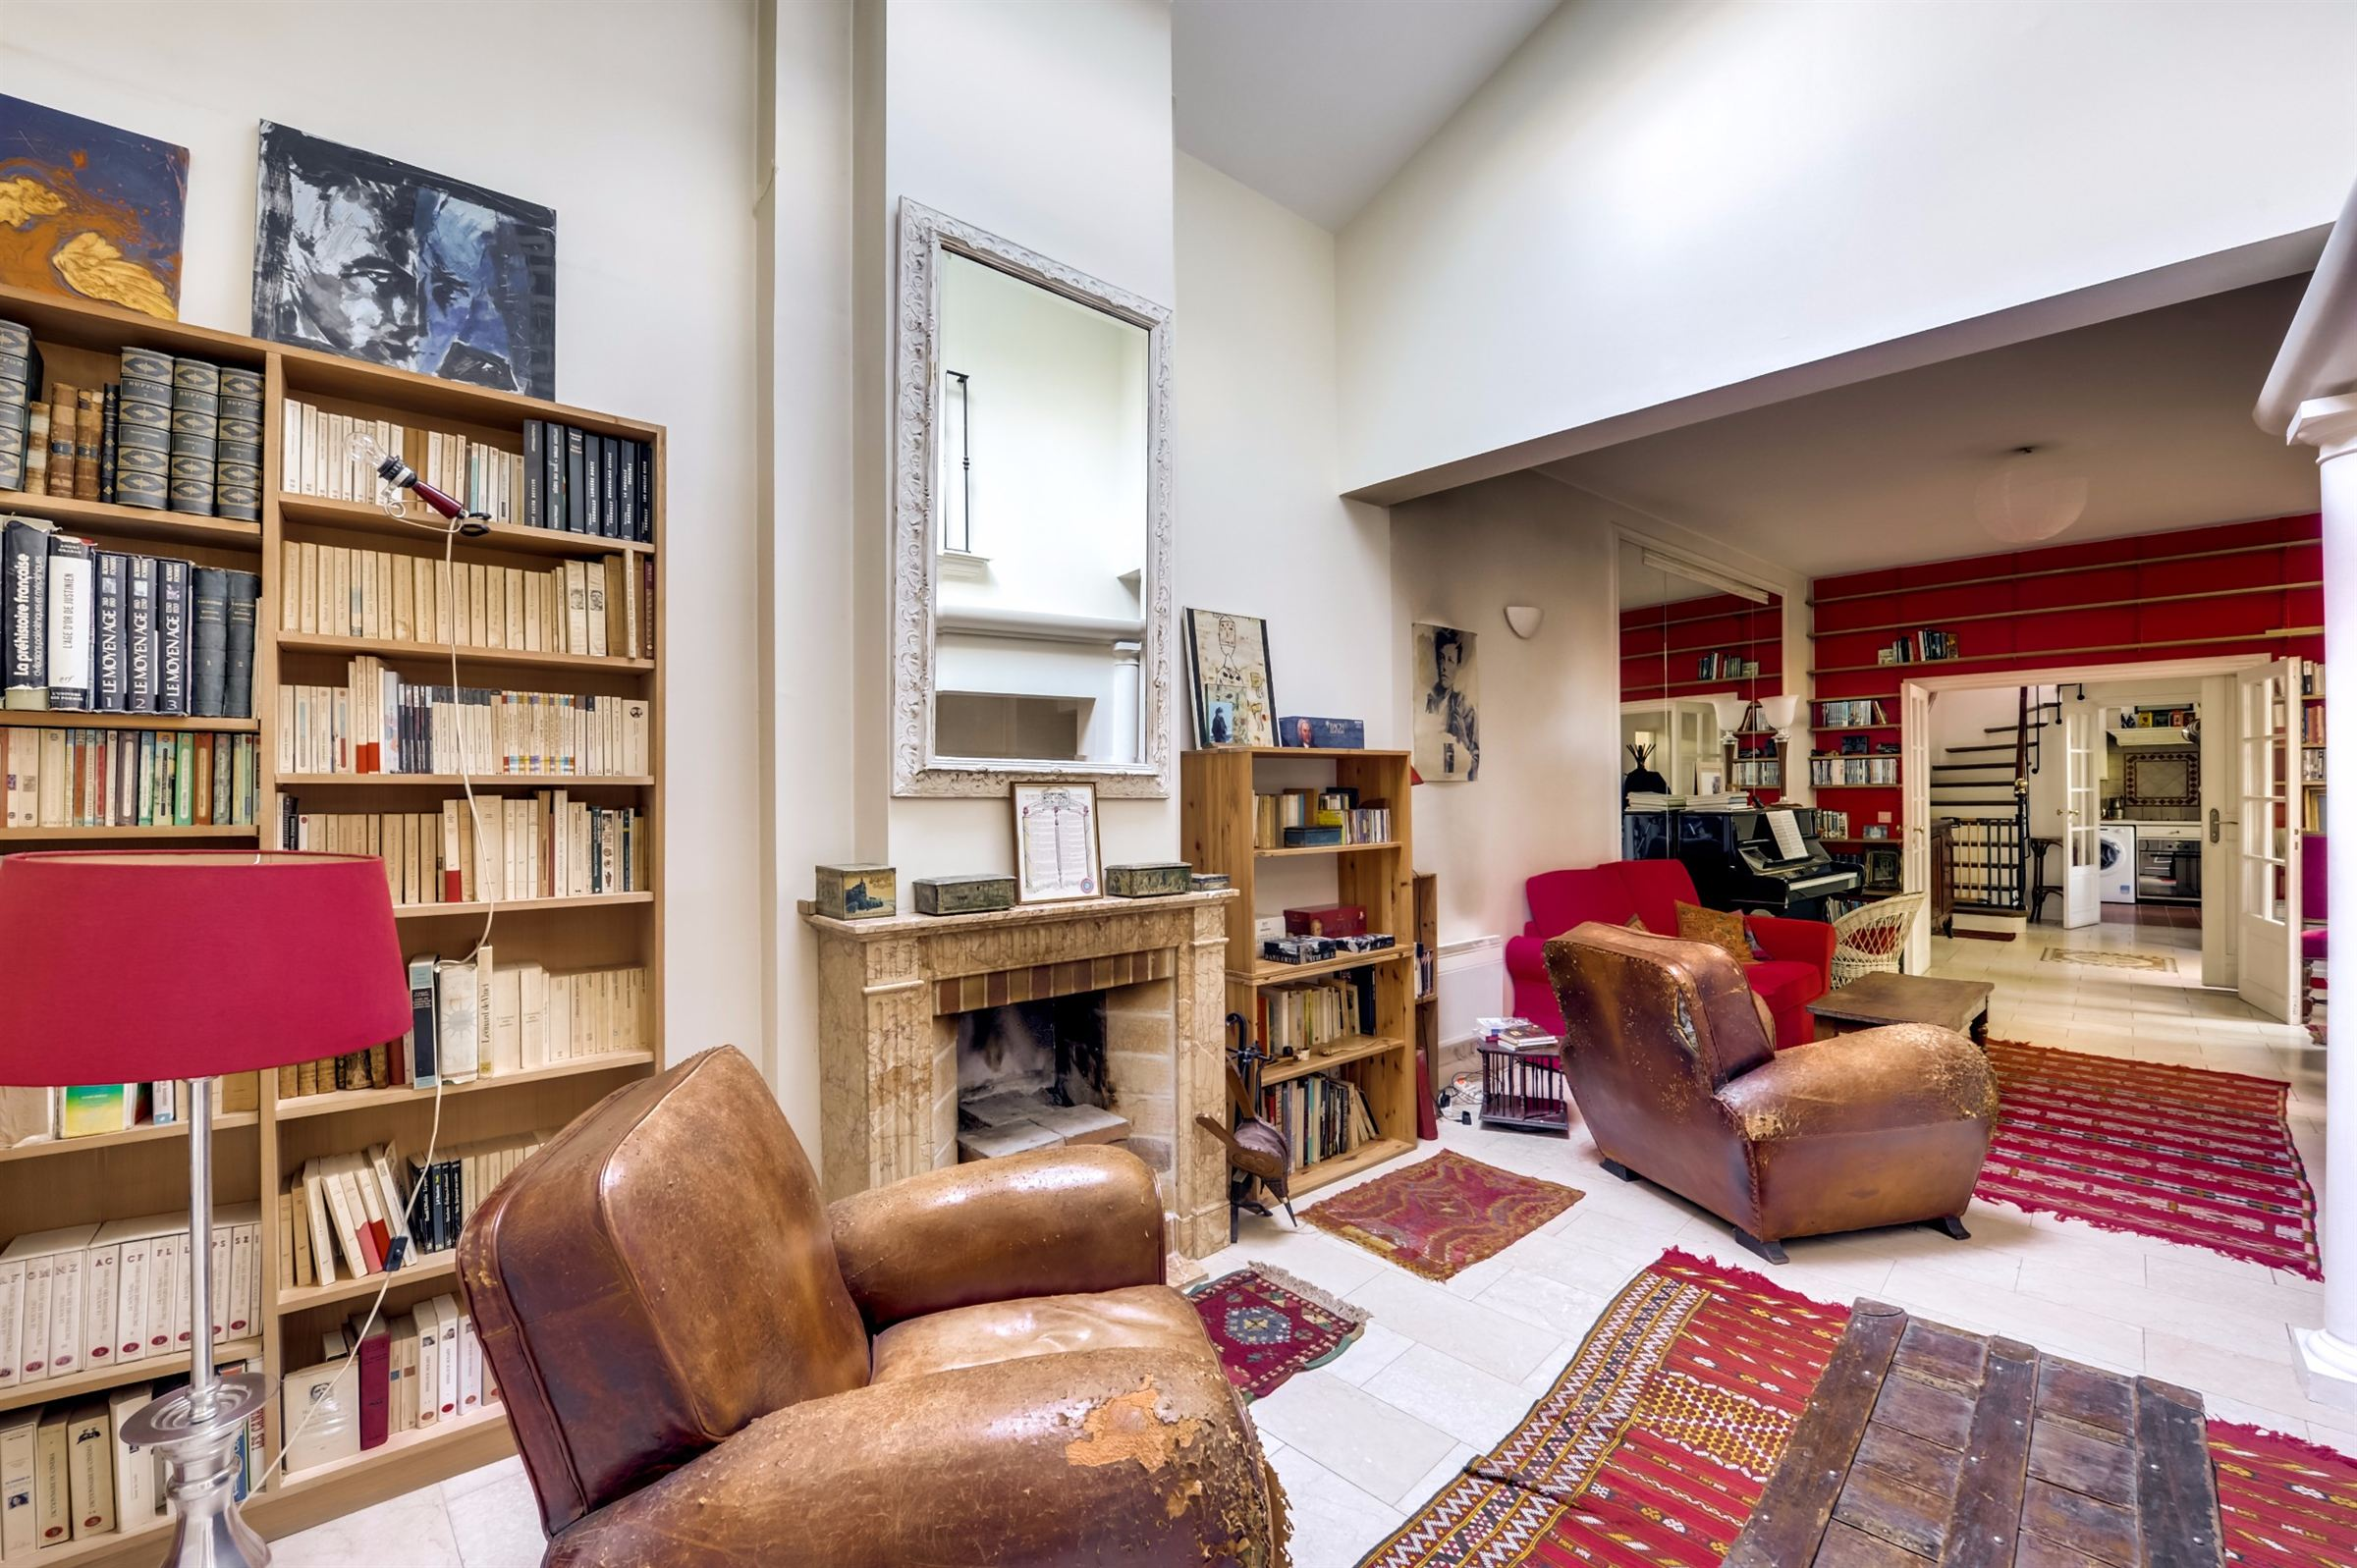 sales property at Townhouse with unobstructed view for sale, Paris 14 - Daguerre, 5 bedrooms